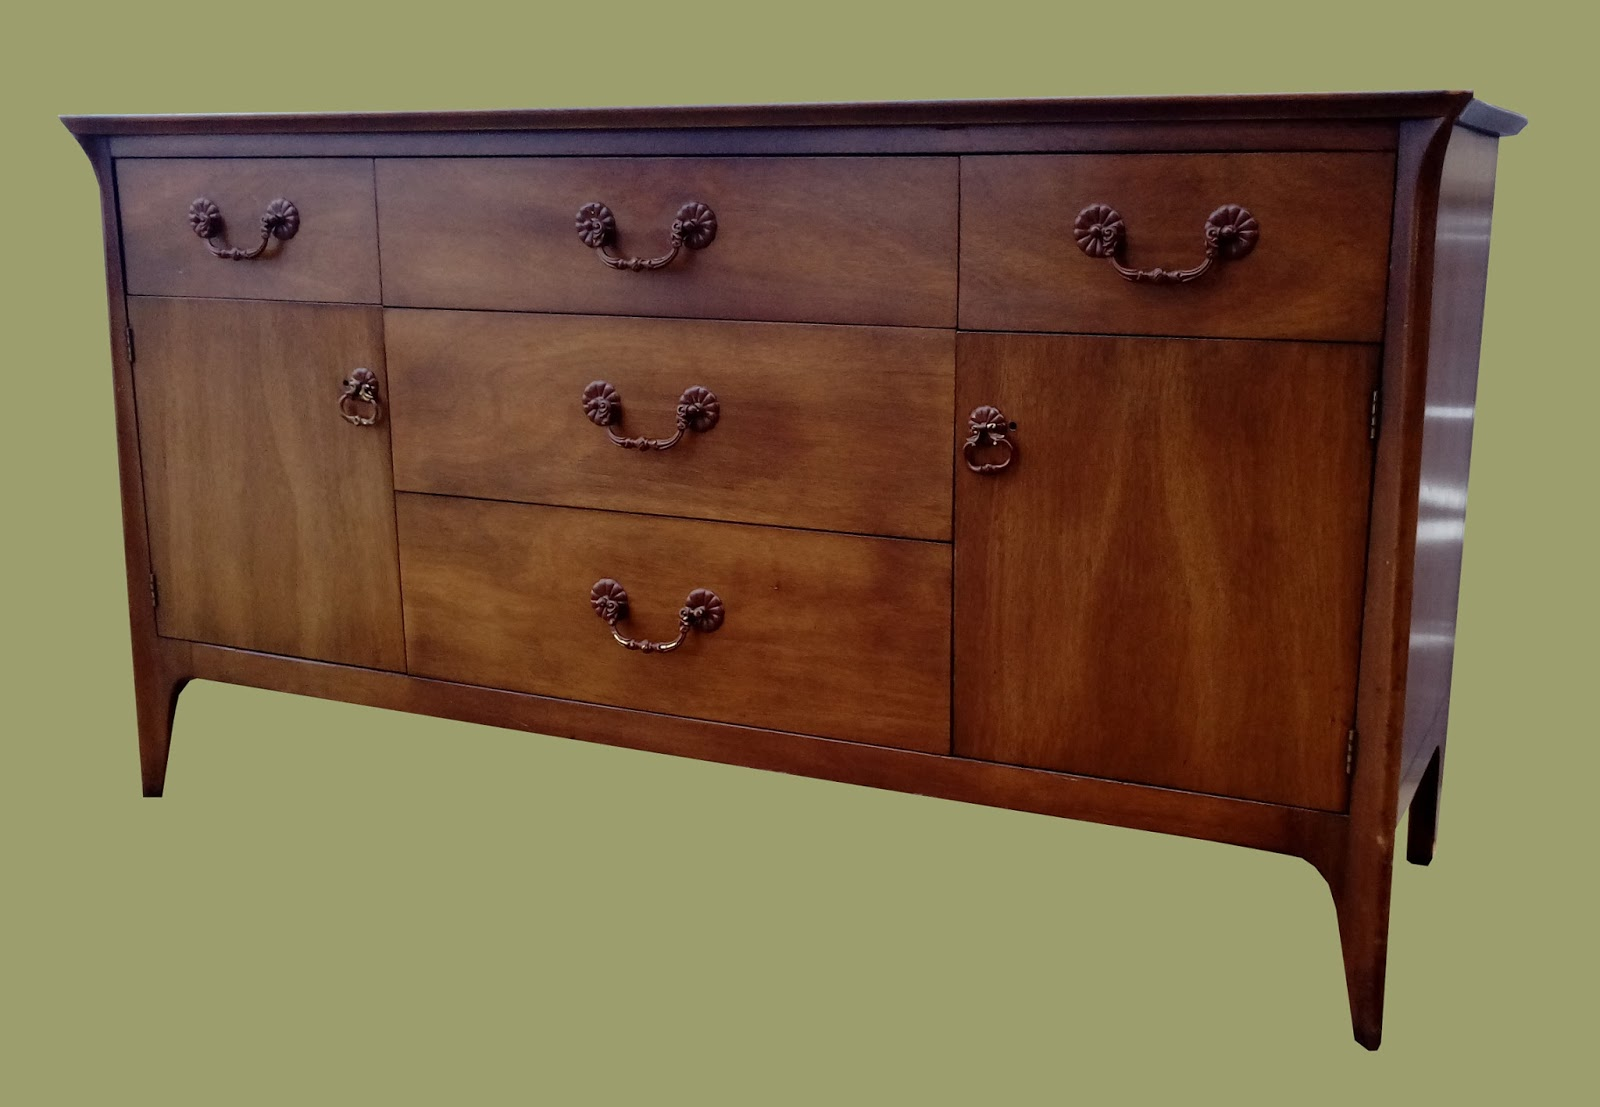 uhuru furniture collectibles midcentury walnut buffet. Black Bedroom Furniture Sets. Home Design Ideas